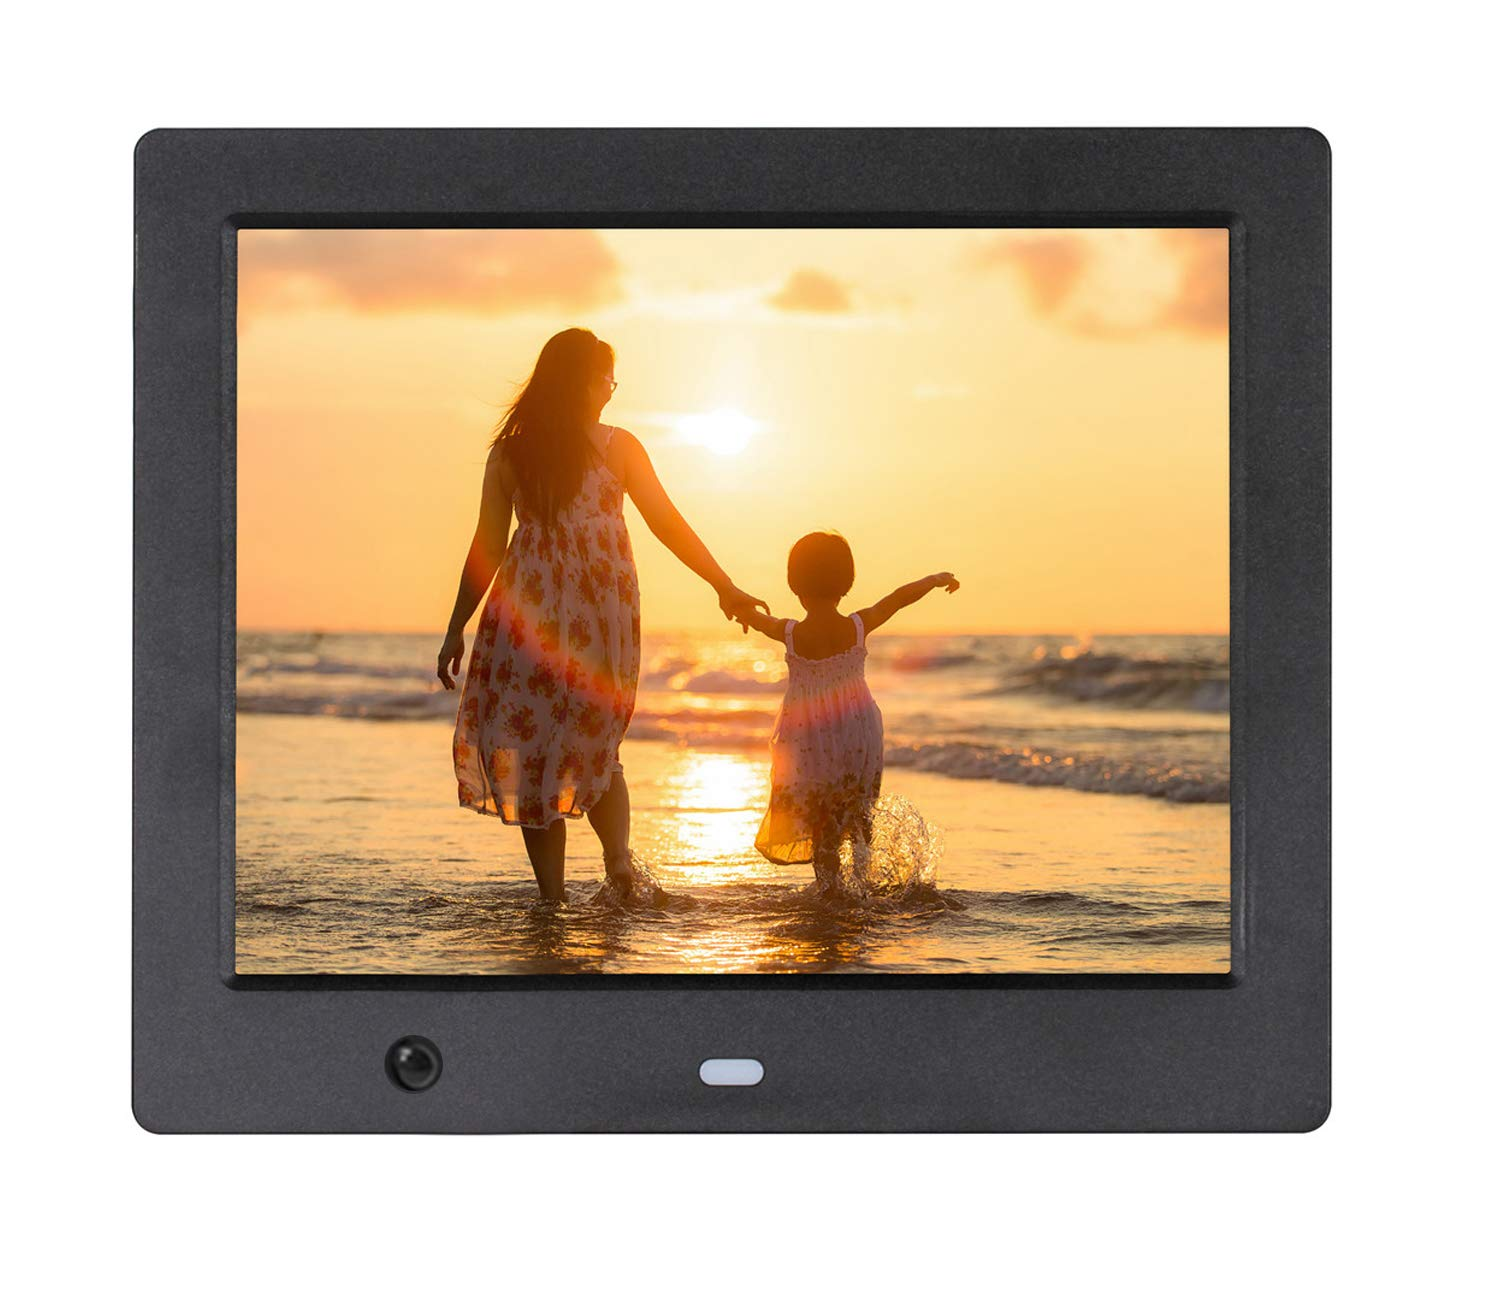 ACOWSUN Digital Picture Frame 12 Inch HD 1280X800 Plastic case Can Play Photos Music Videos When Insert Photo Frames USB SD Have Motion Sensor Remote and 4G SD Card Include